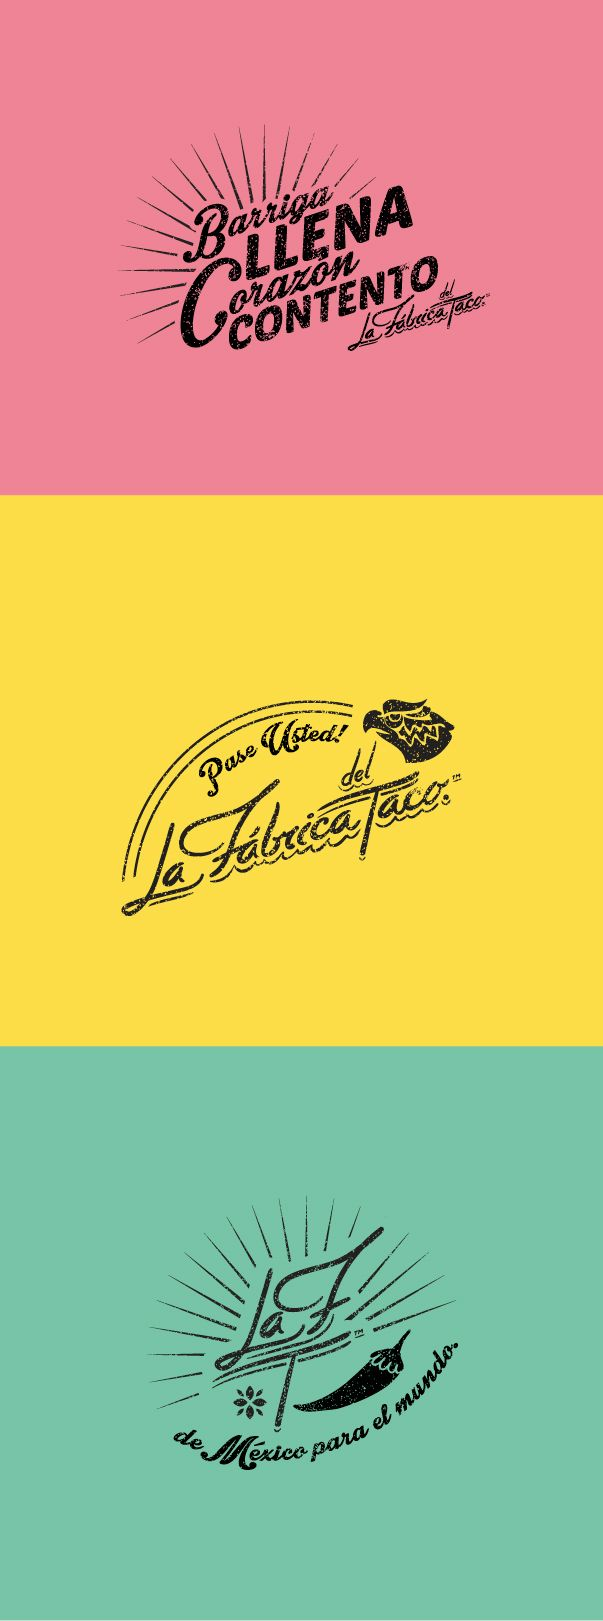 During the last 4 months we worked together with La Fábrica del Taco &…